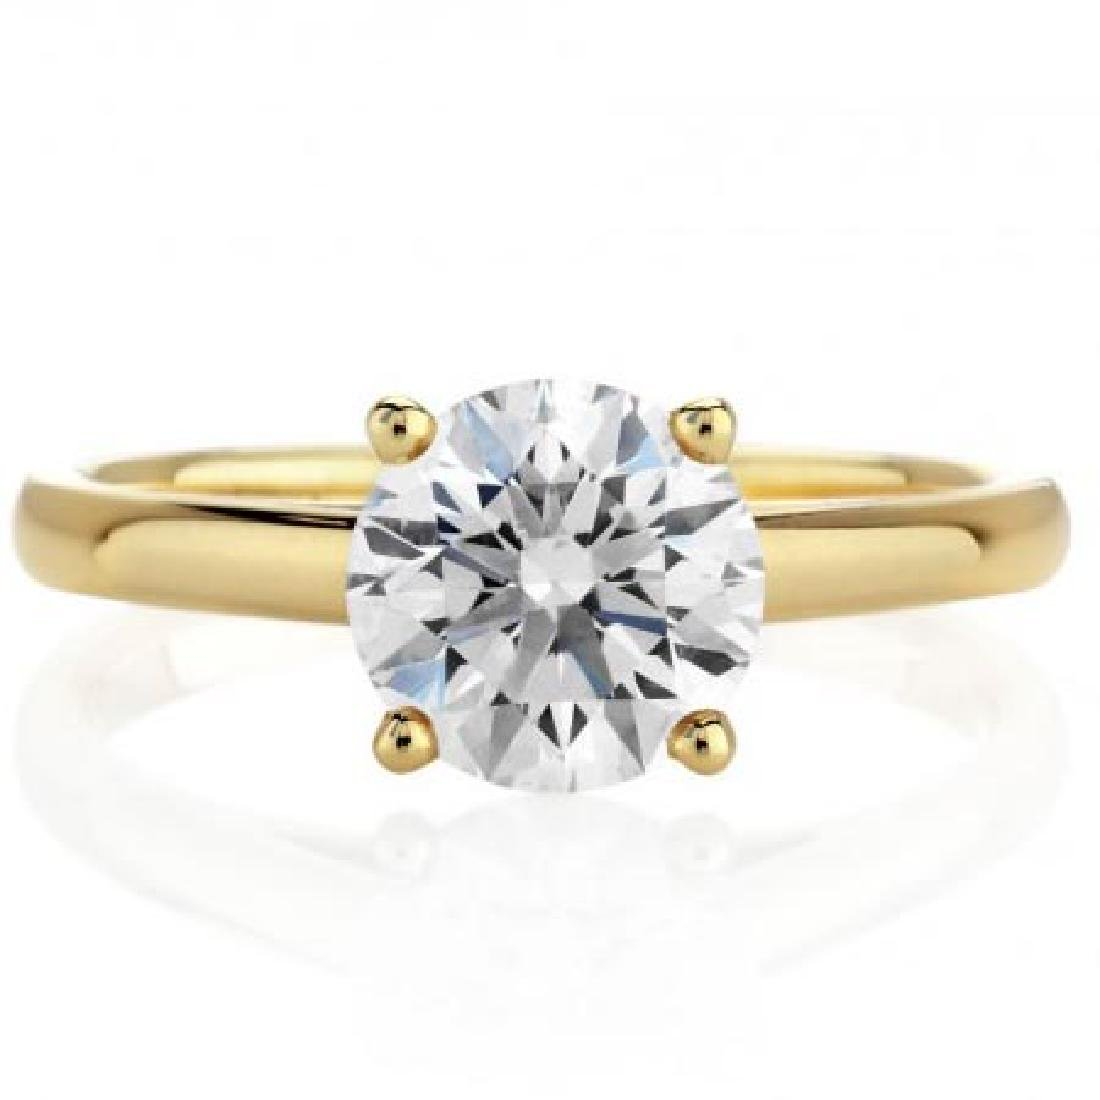 CERTIFIED 0.64 CTW ROUND G/I1 SOLITAIRE RING IN 14K YEL